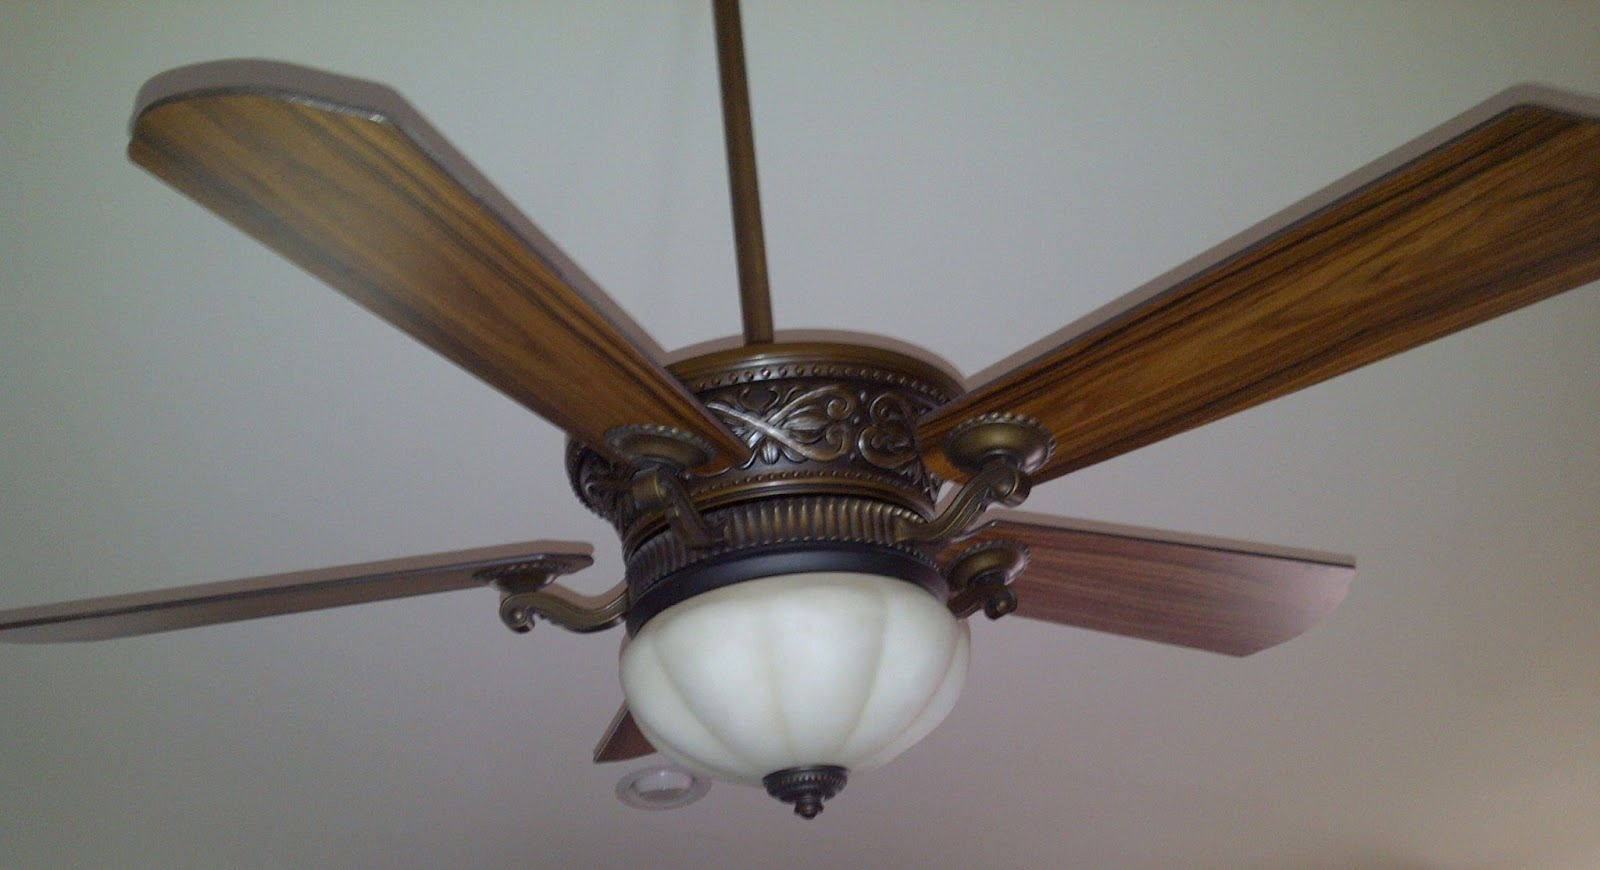 hight resolution of ceiling fan with no apparent way to reverse the fan direction